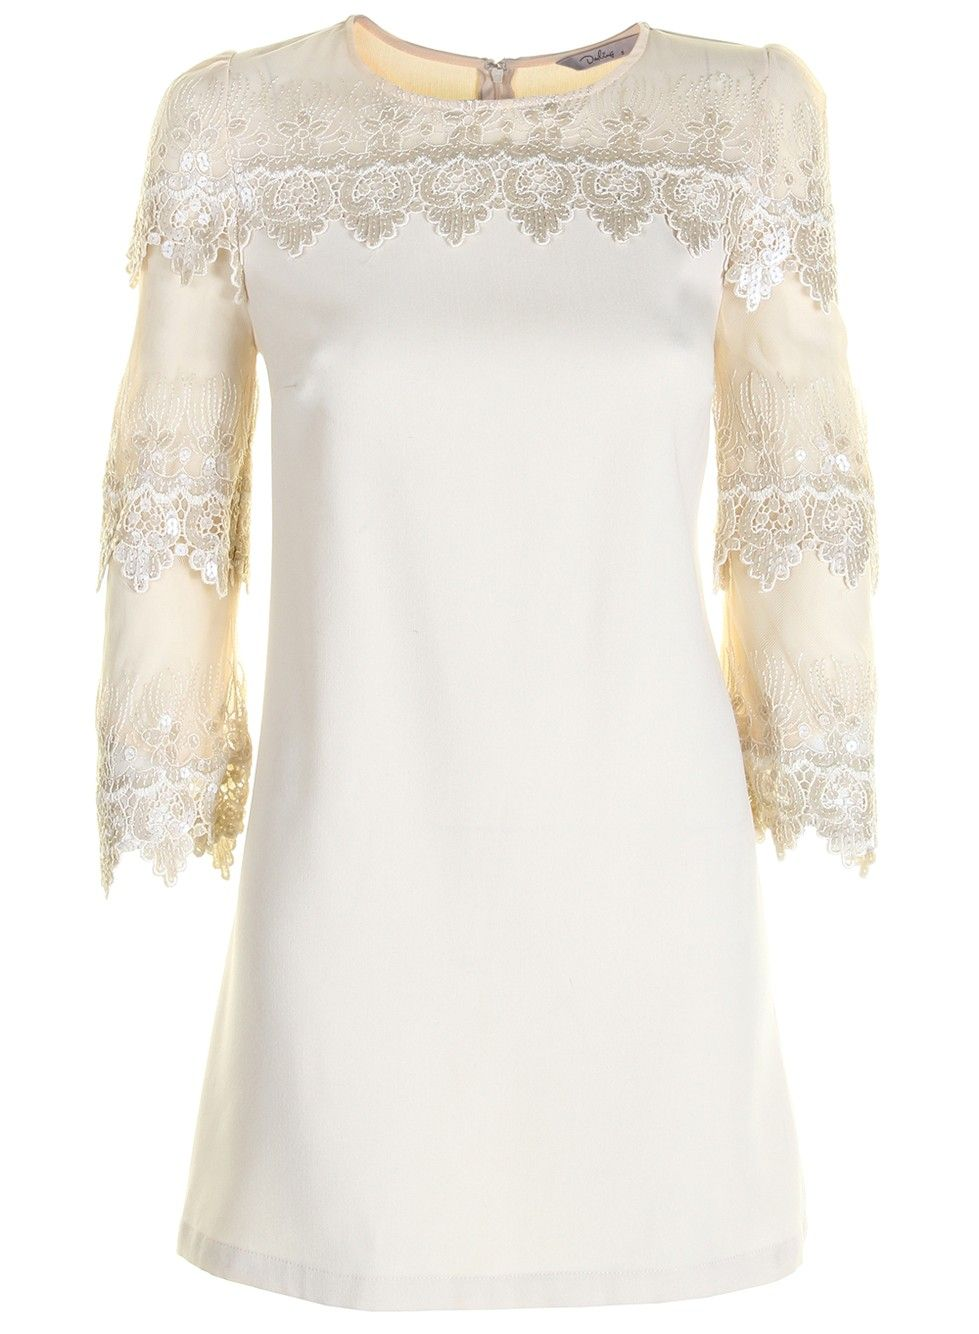 Dress for wedding engagement party  Lovely dress for engagement party or rehersal dinner Leona Tunic by